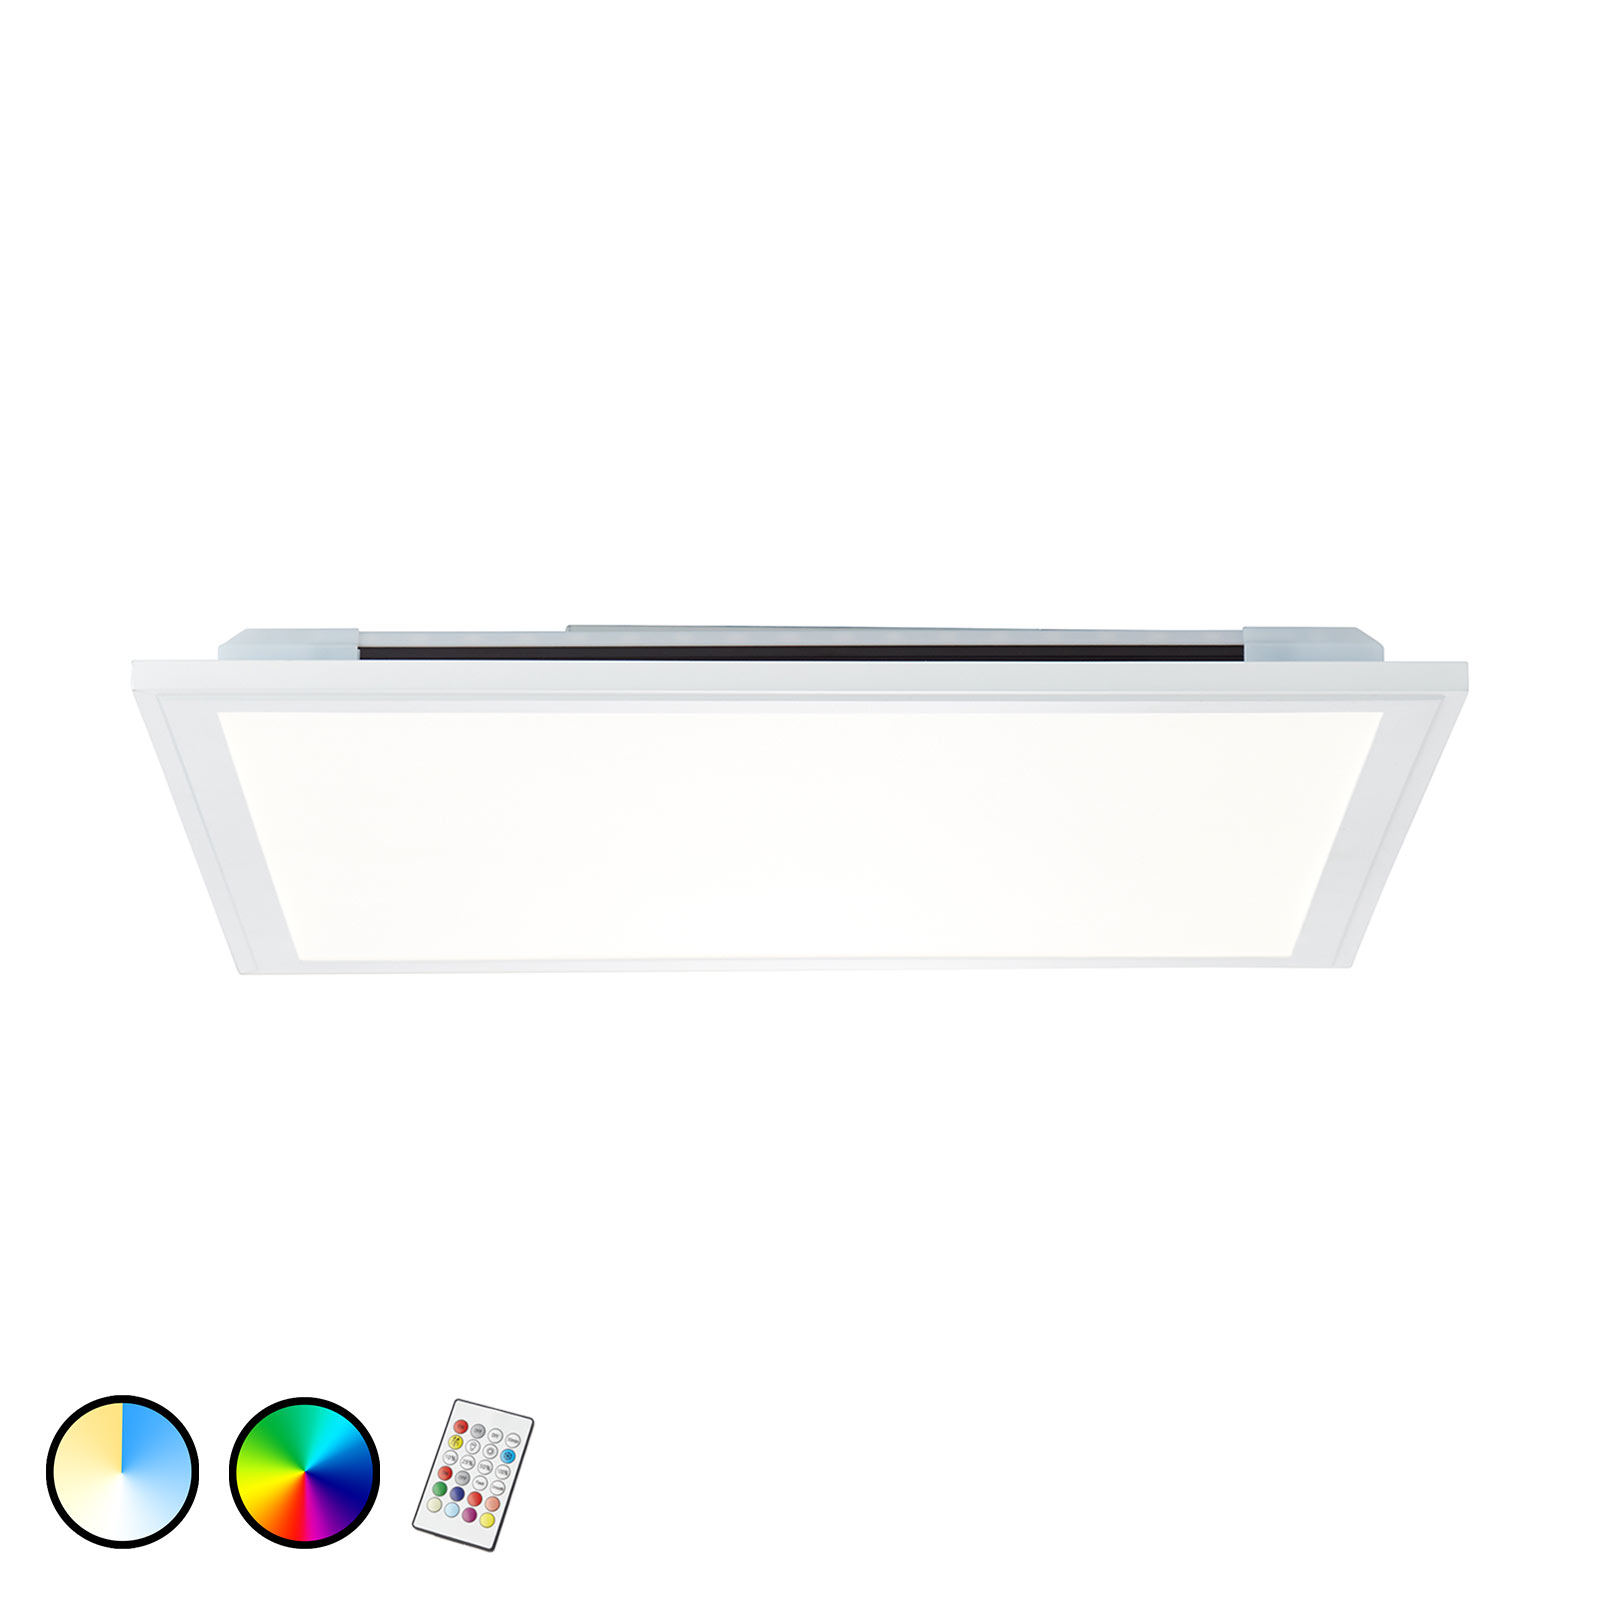 Lampa sufitowa LED Allie, 59,5x59,5 cm